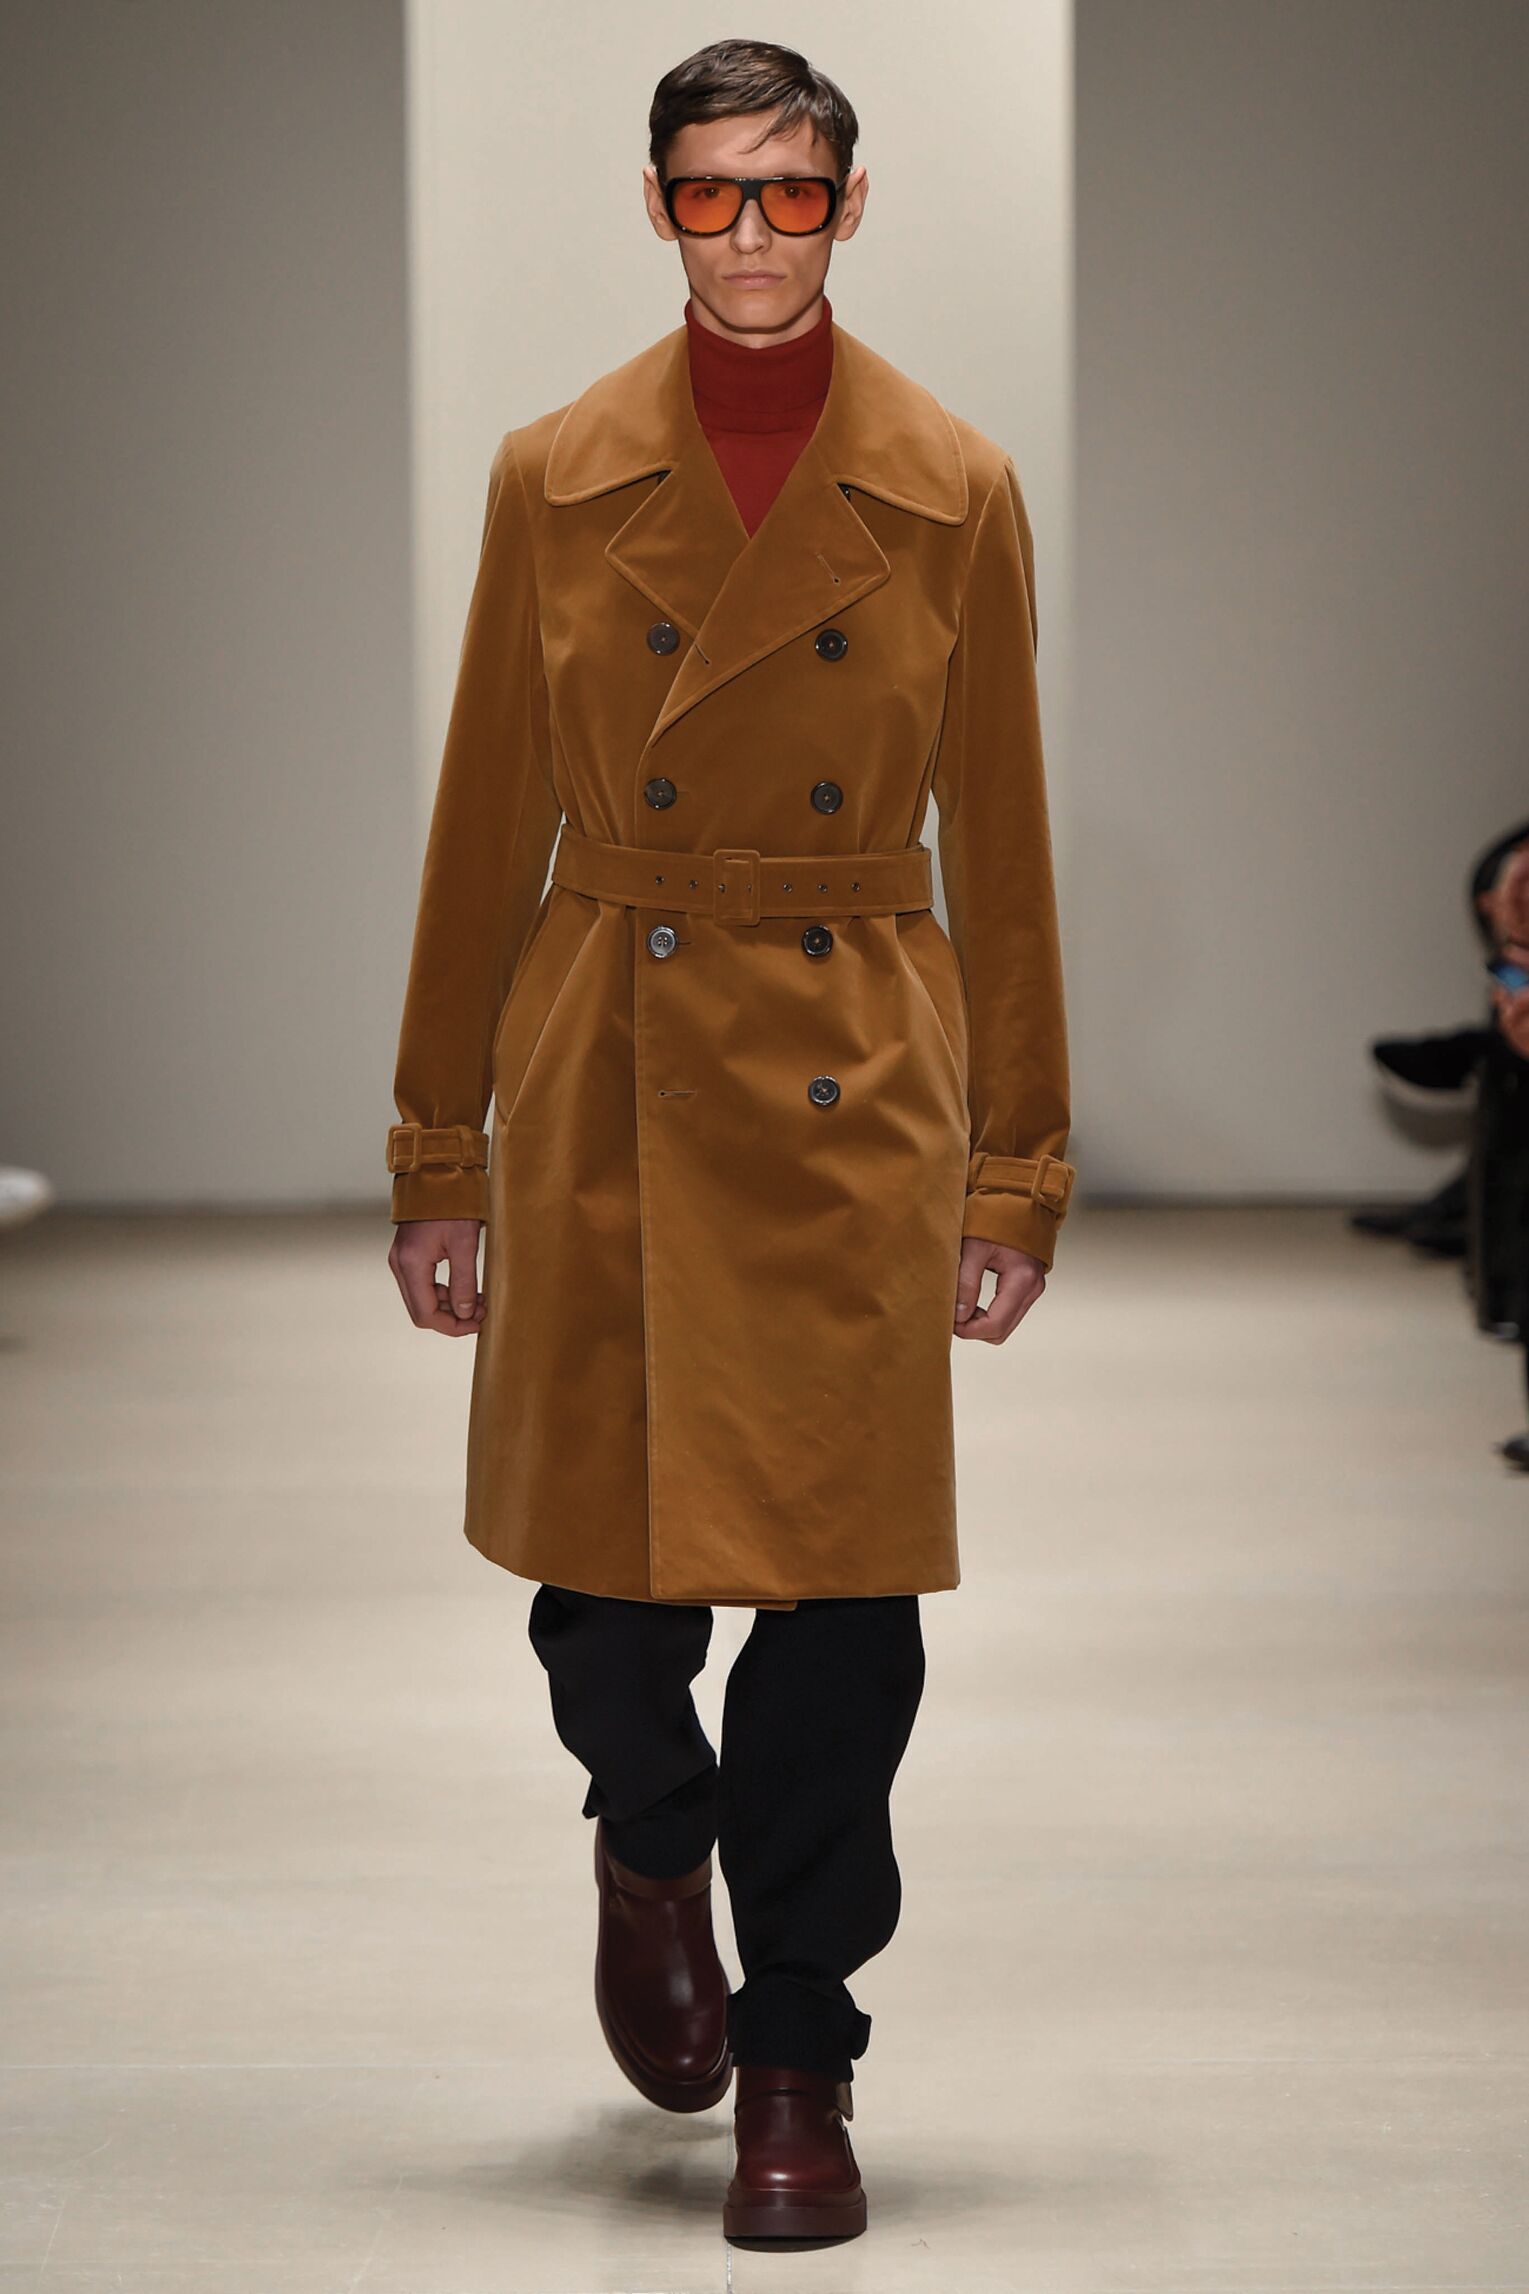 Fashion Man Model Jil Sander Catwalk